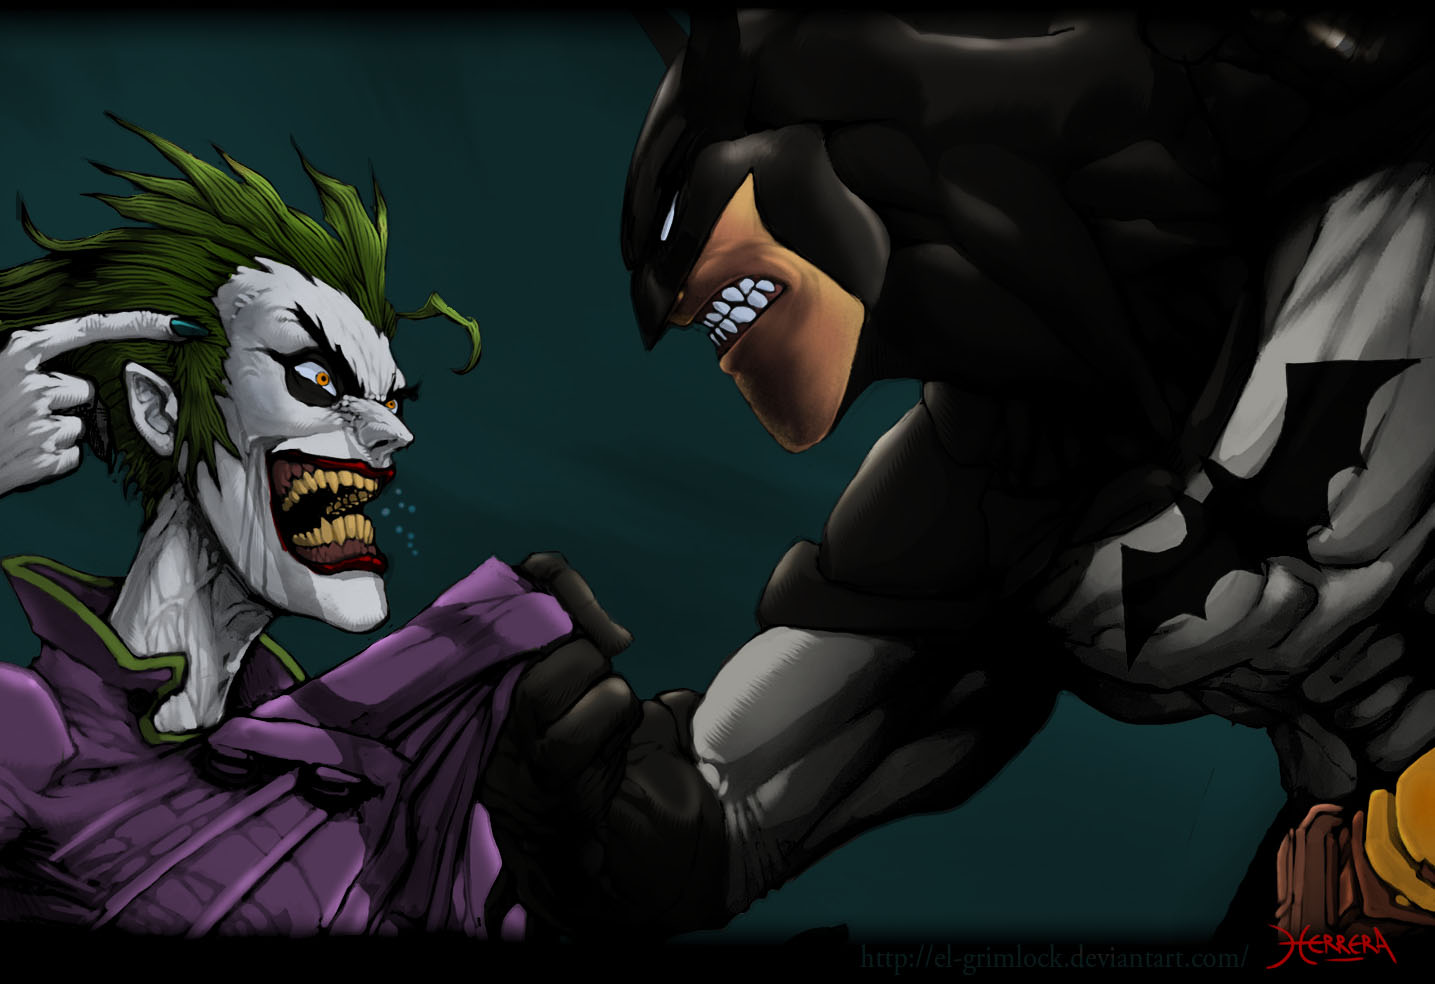 sfondi desktop batman vs joker 1435x984